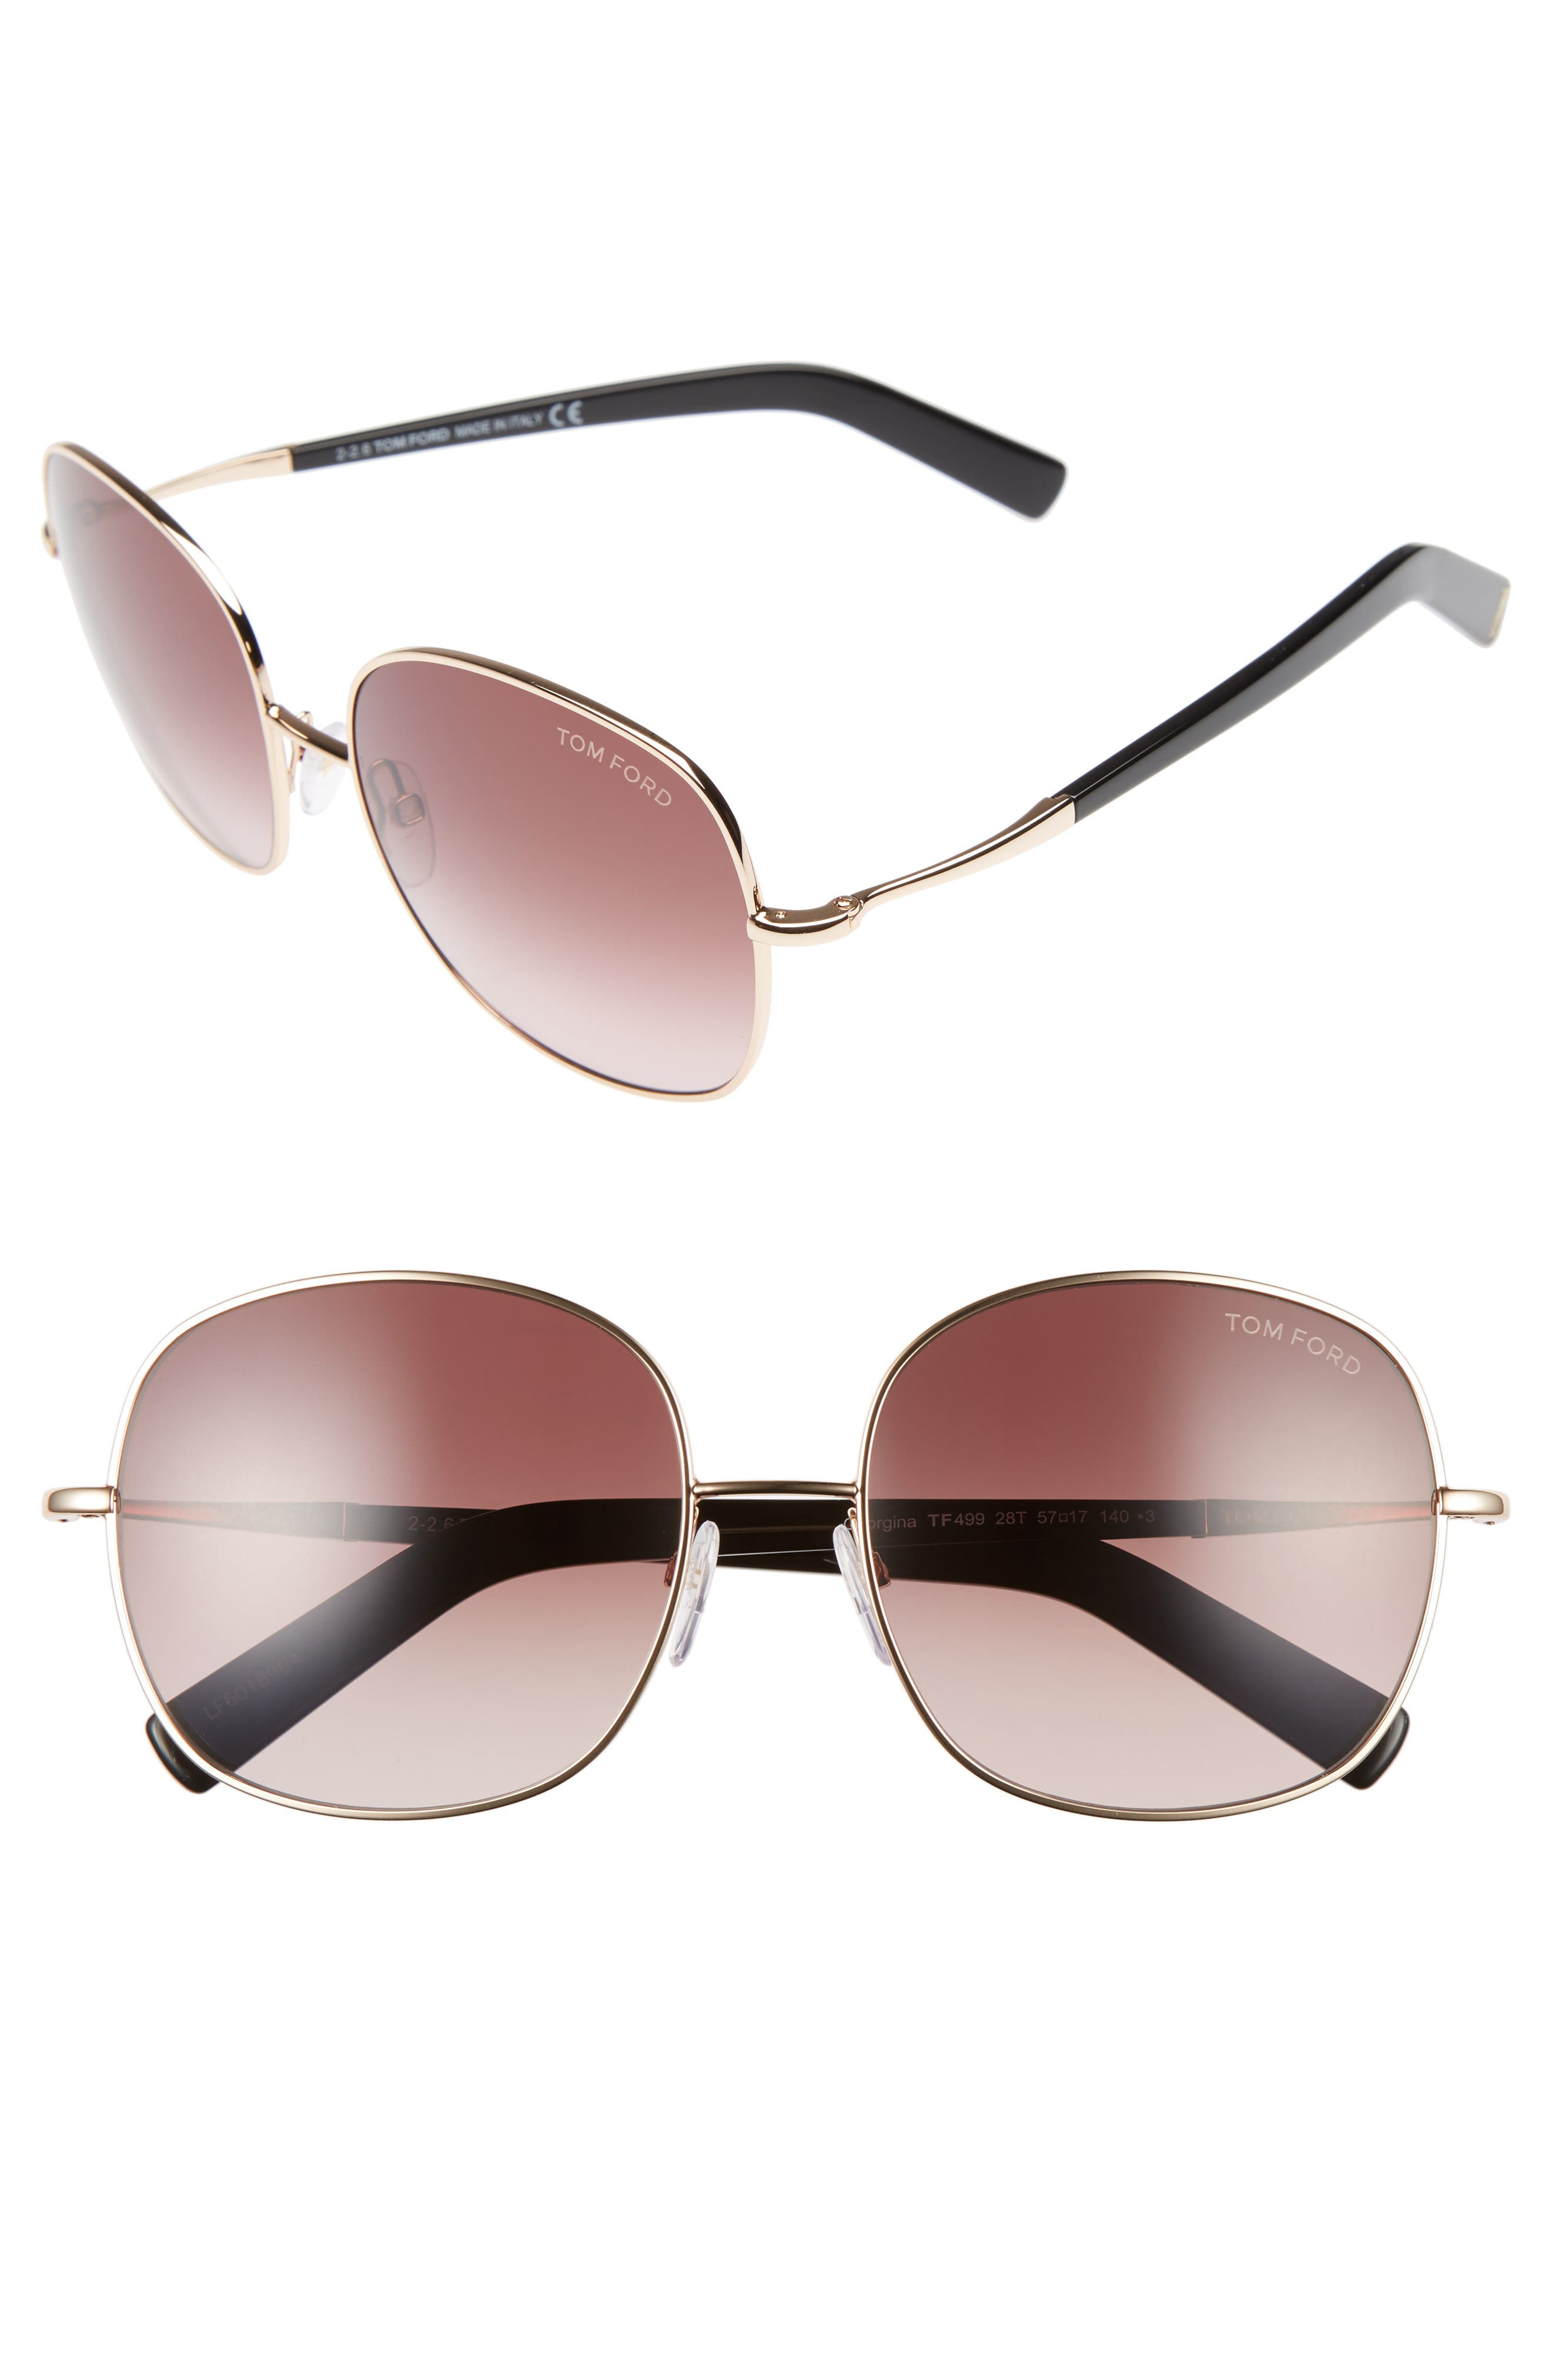 Tom Ford Georgina 57mm Gradient Lens Square Sunglasses